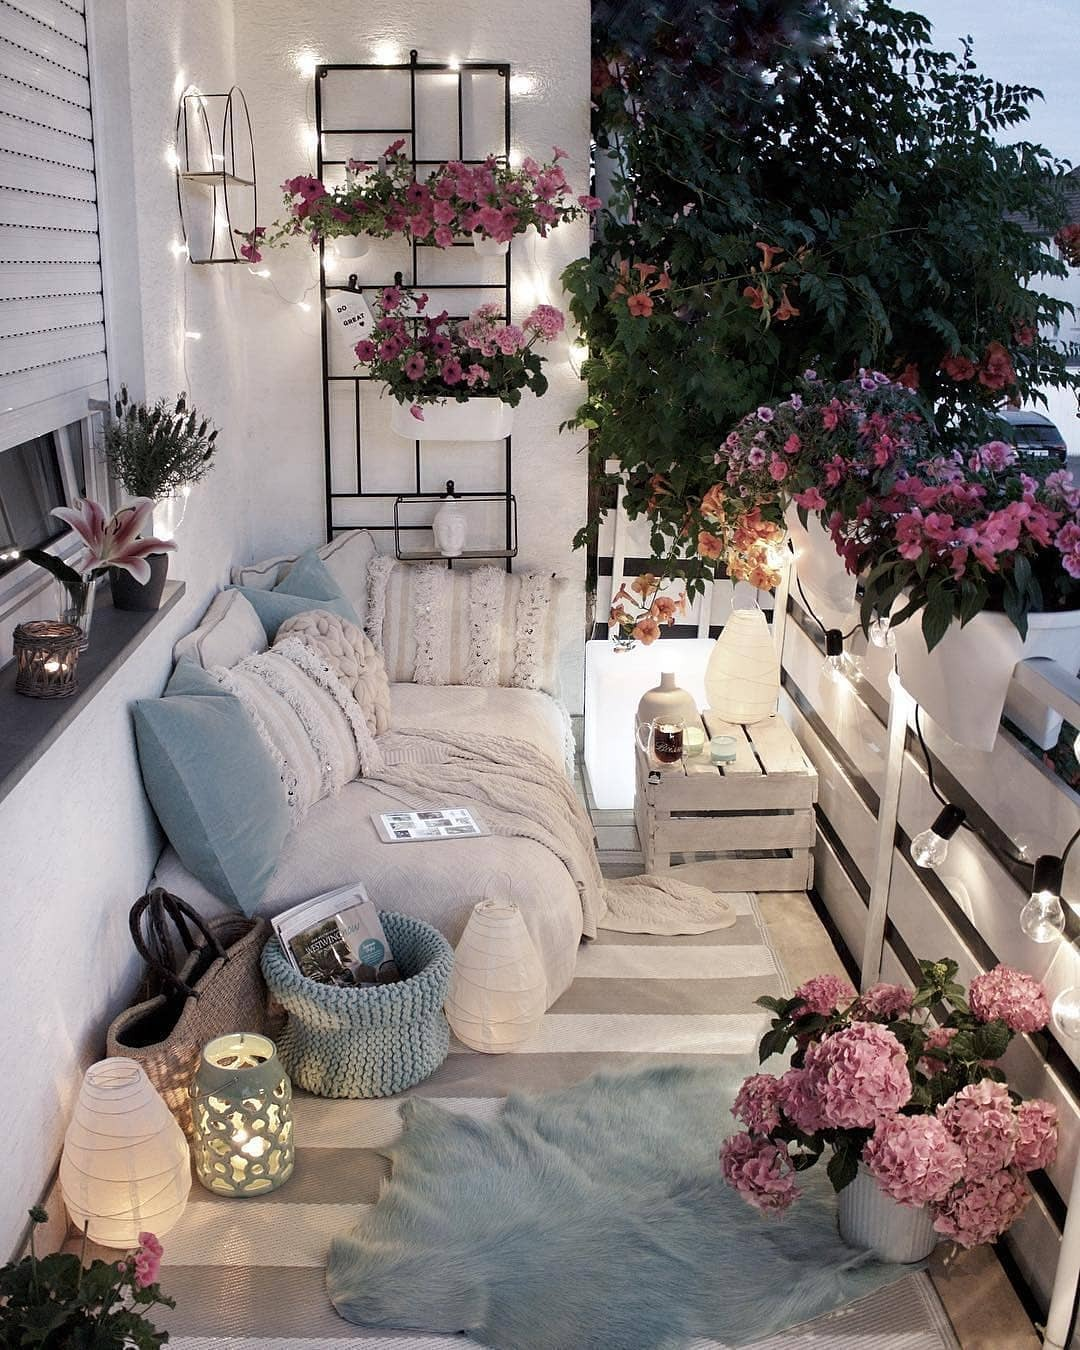 1000 images about balcony ideas on pinterest